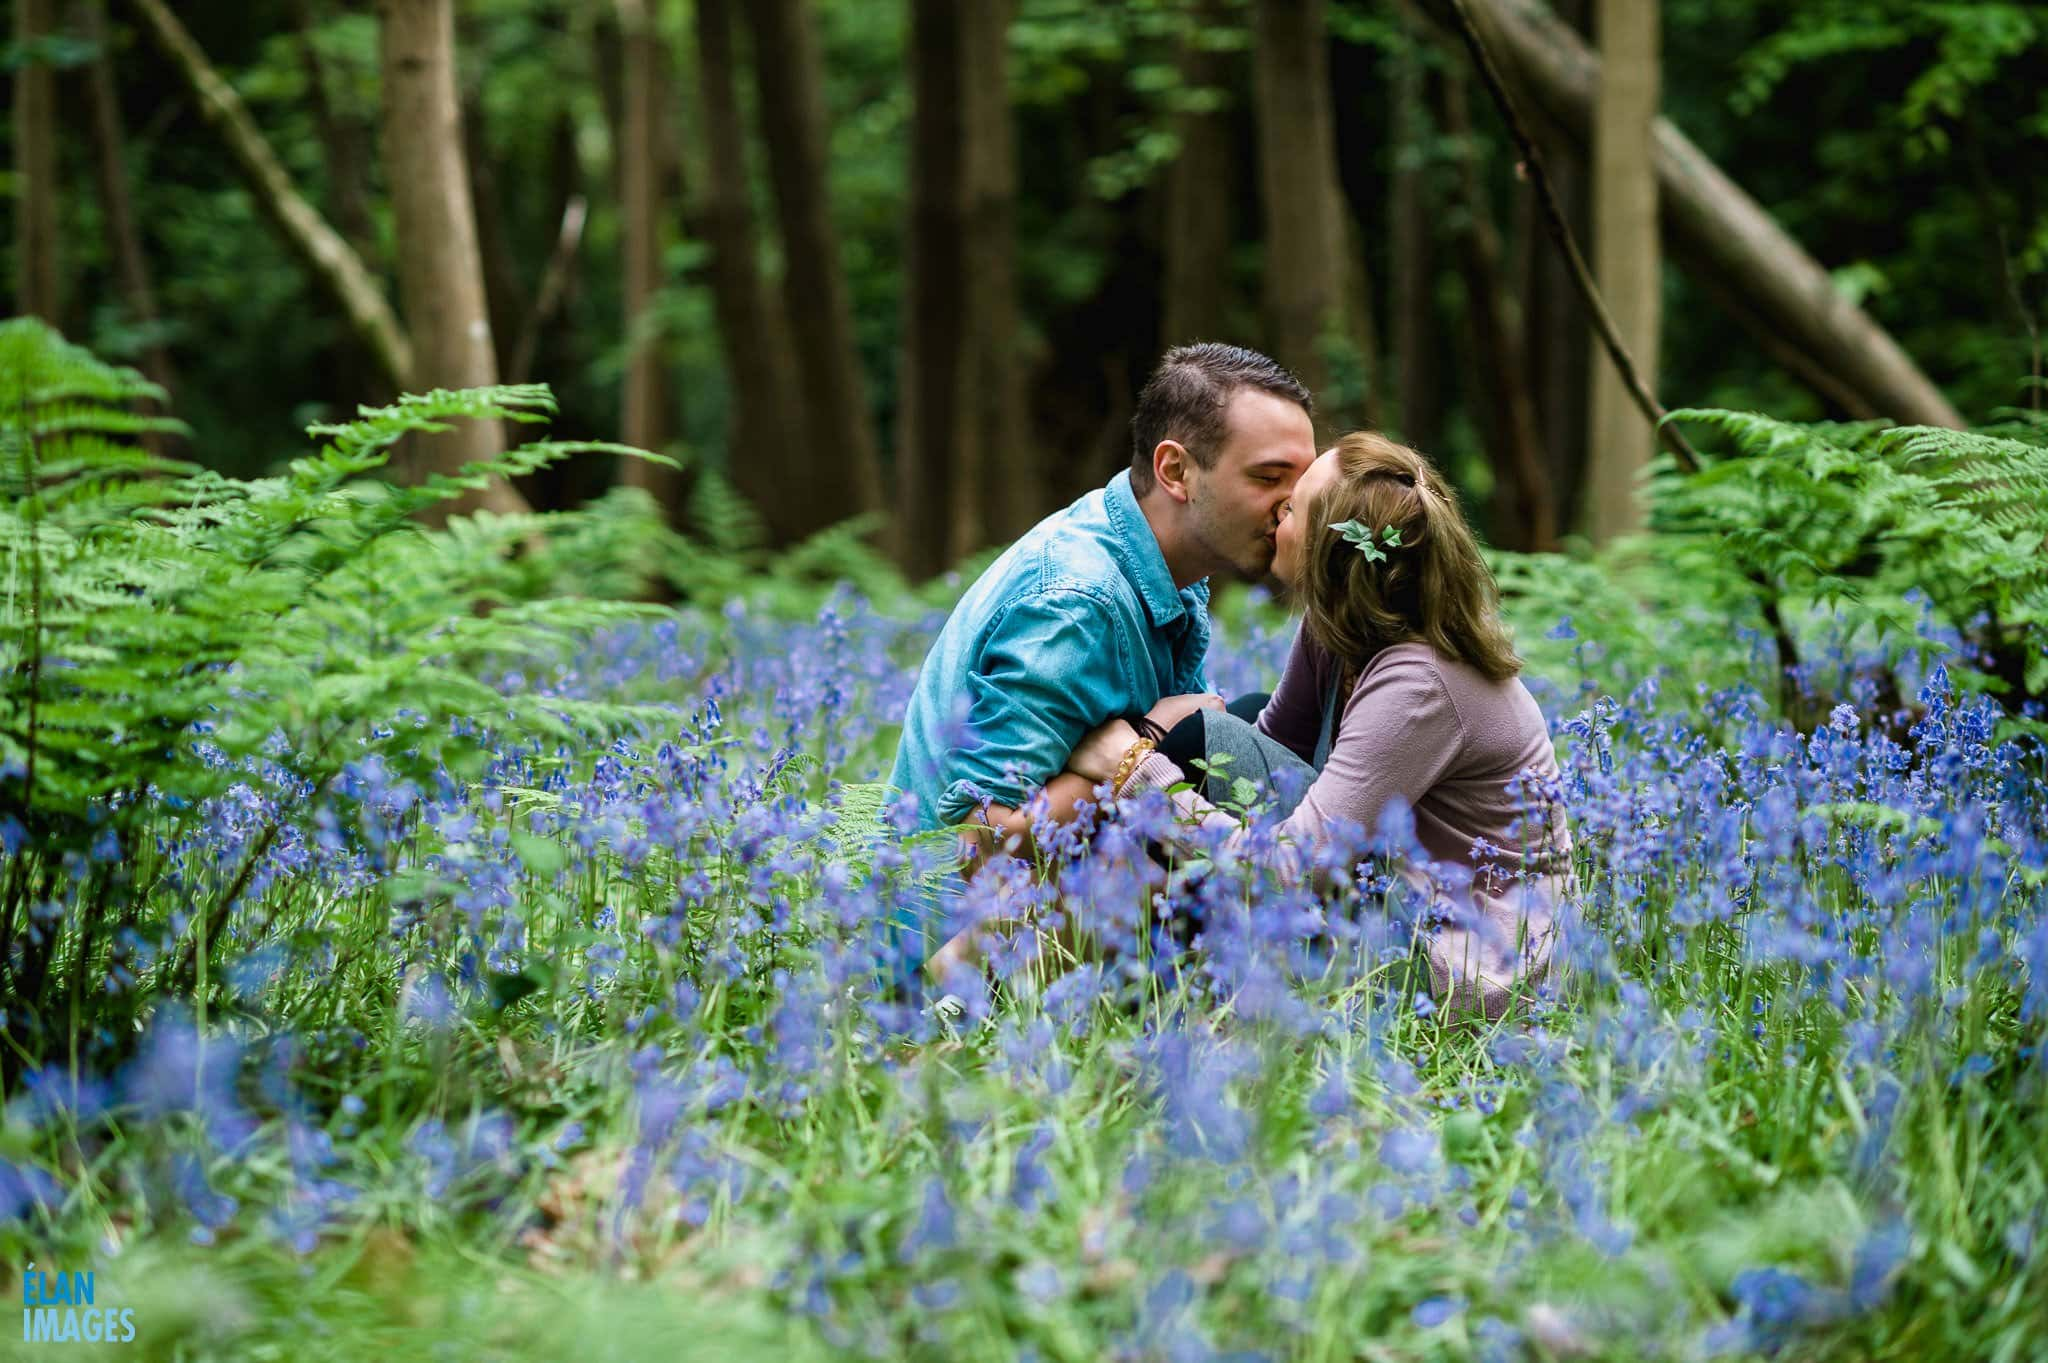 Engagement Photo Shoot in the Bluebell Woods near Bristol 14